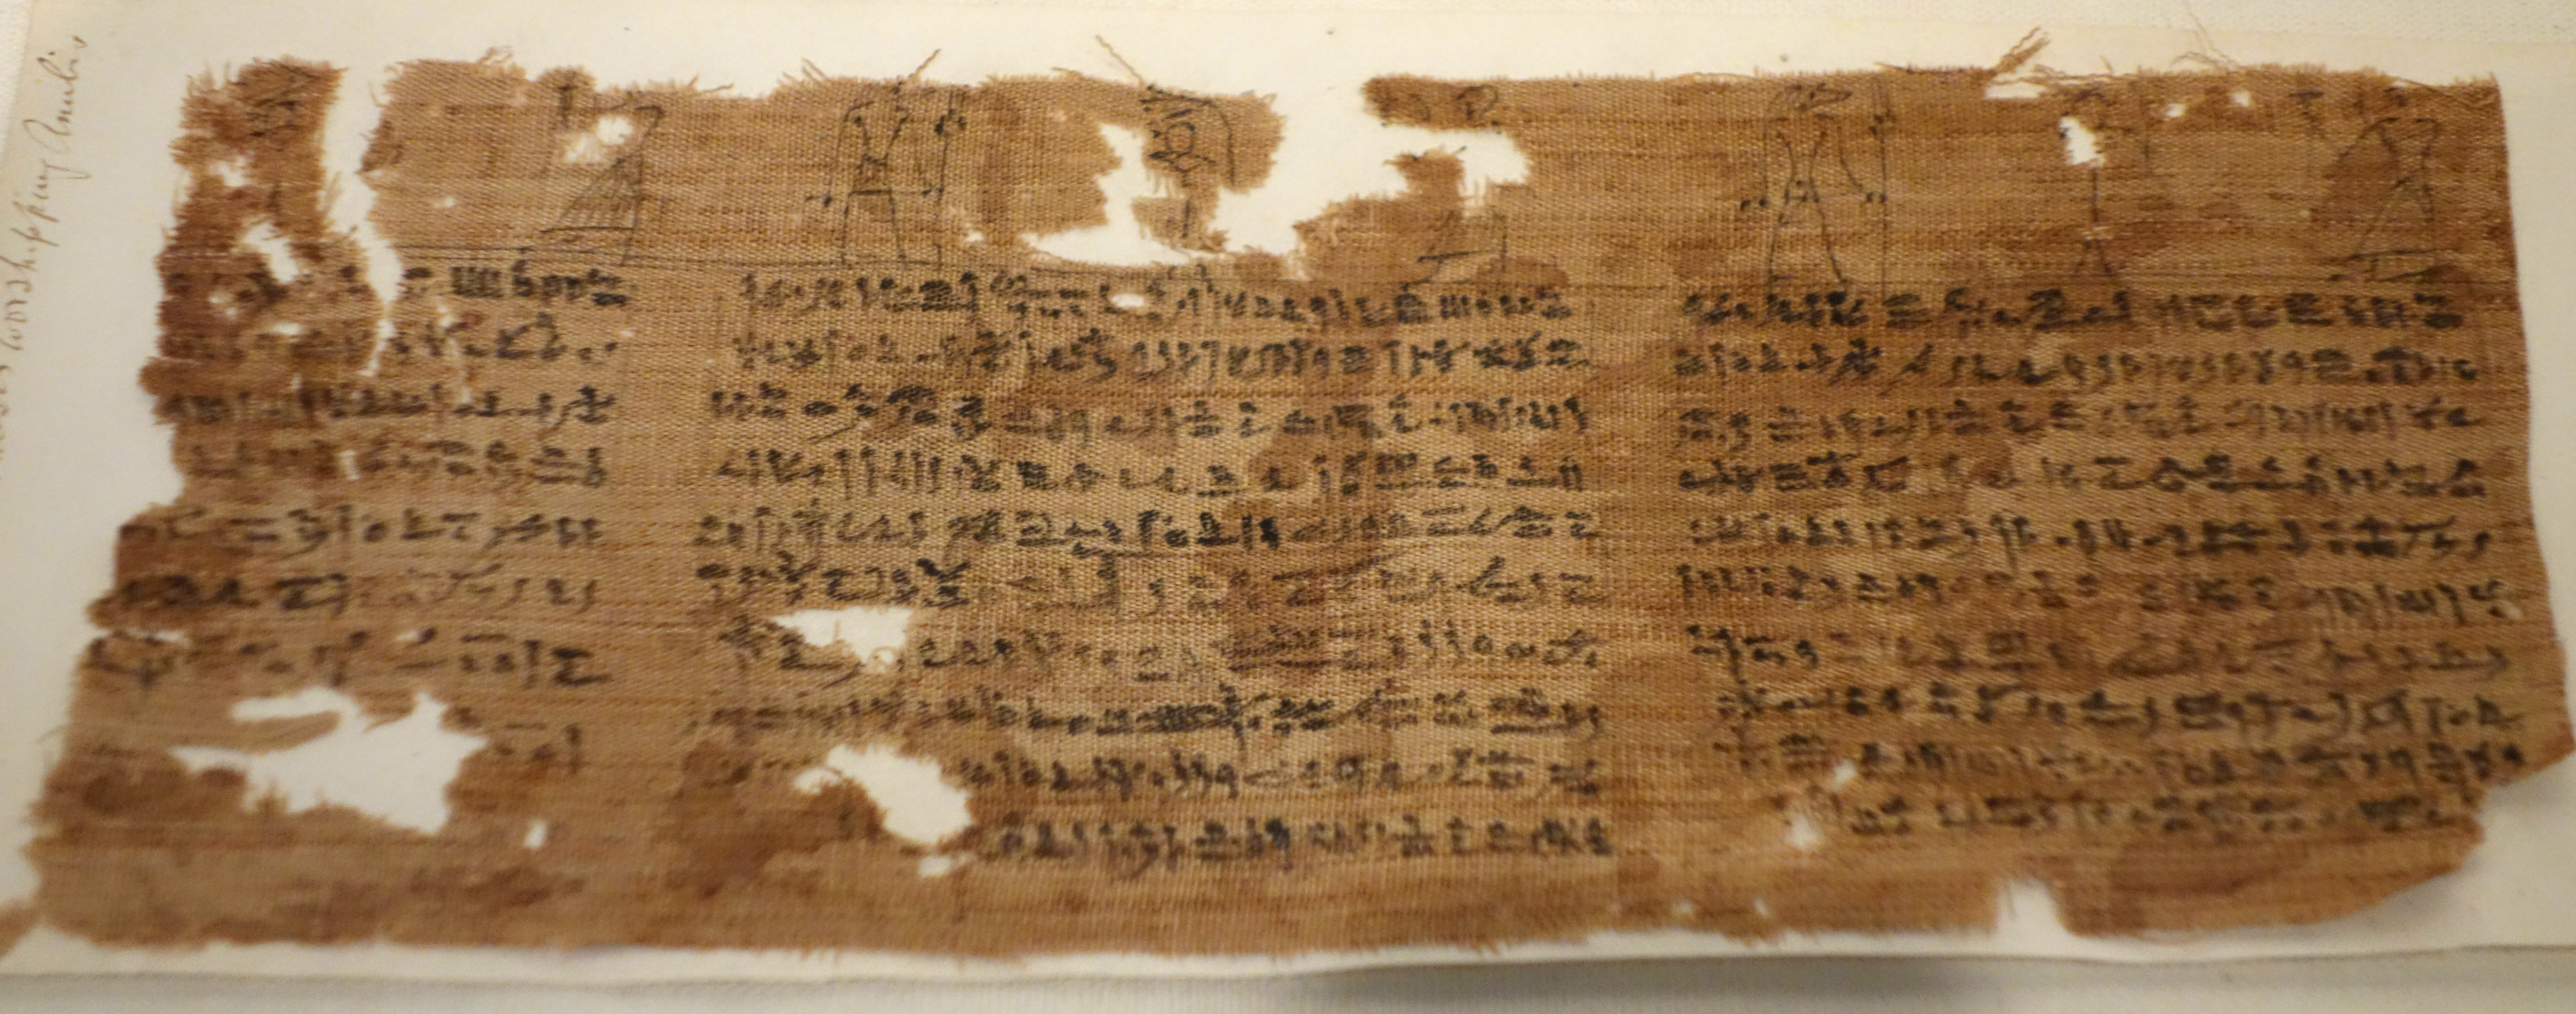 File:Funerary_text,_Egypt,_hieratic_script,_Third_Intermediate_Period,_1069 664_BC,_linen_with_ink_ _Albany_Institute_of_History_and_Art_ _DSC08195 on Ancient Egypt History